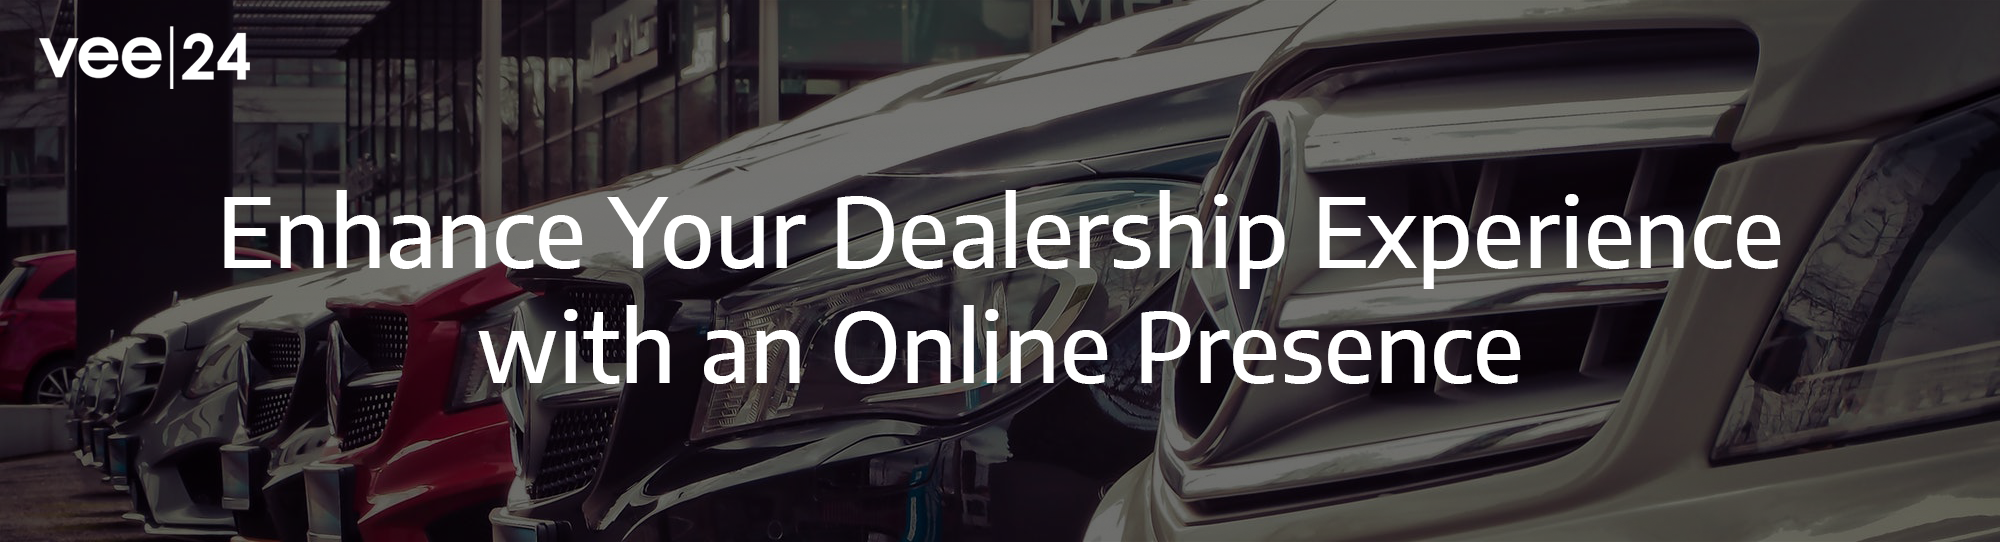 Enhance Your Dealership Experience with an Online Presence